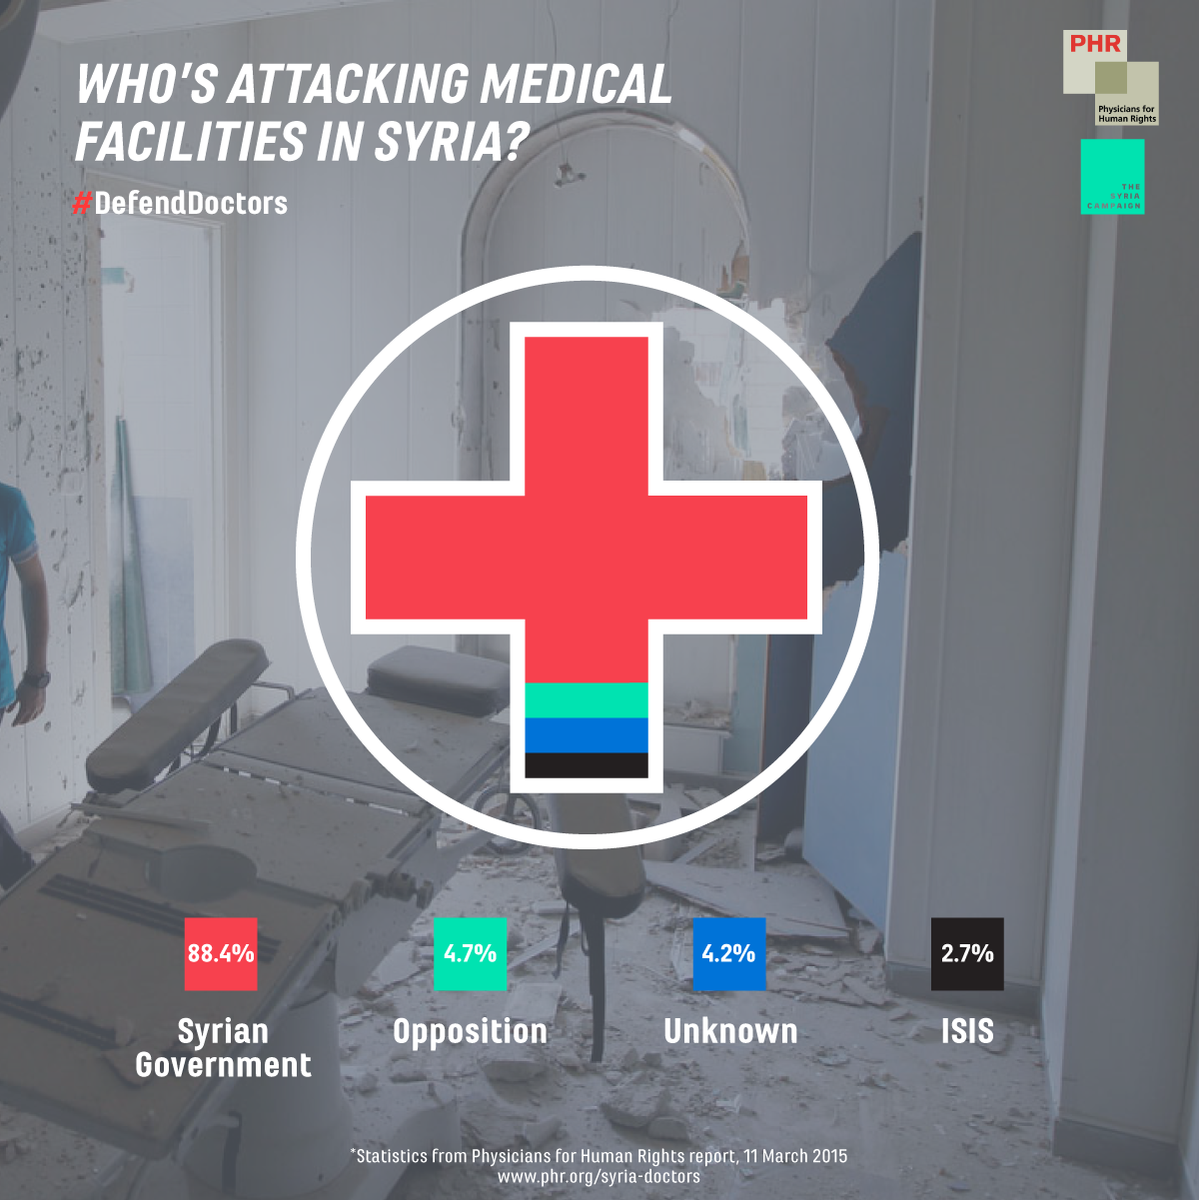 88% of attacks on #Syria's medical facilities have been by the gov't; less than 3% have been by #ISIS. http://t.co/MAMe6Fj4u2